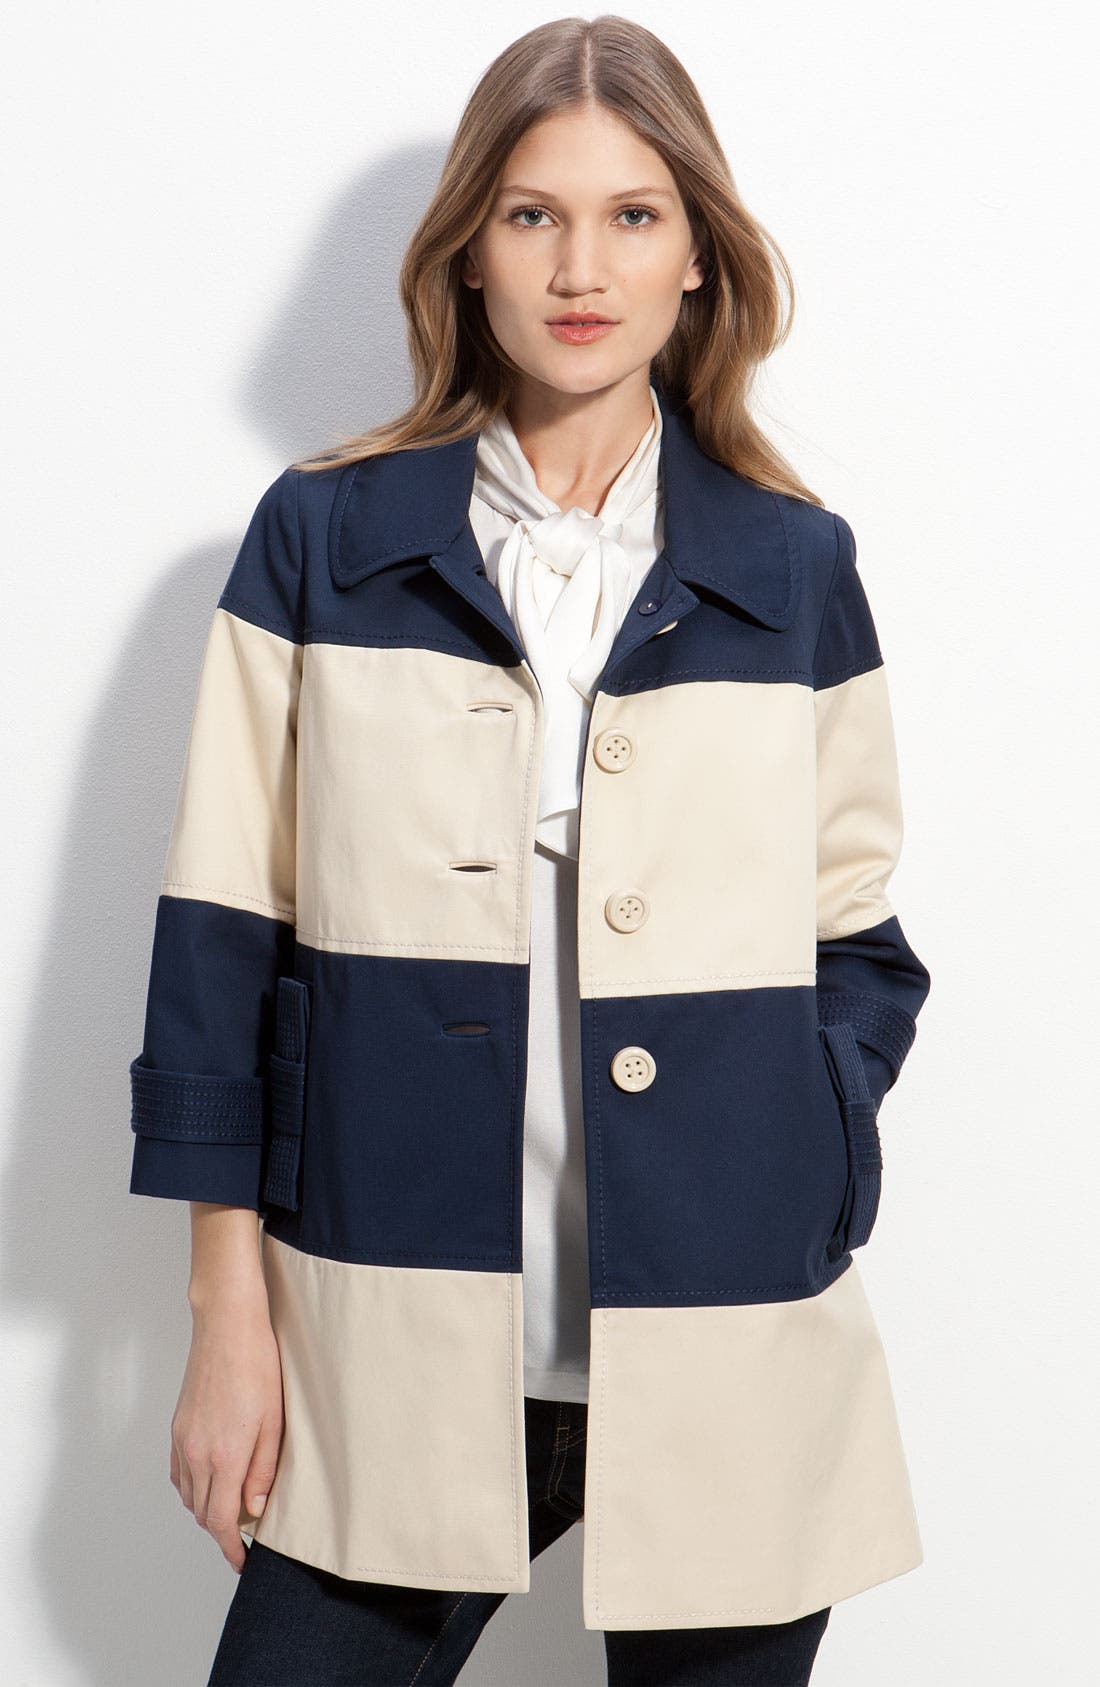 Alternate Image 1 Selected - kate spade new york 'nera' colorblock coat